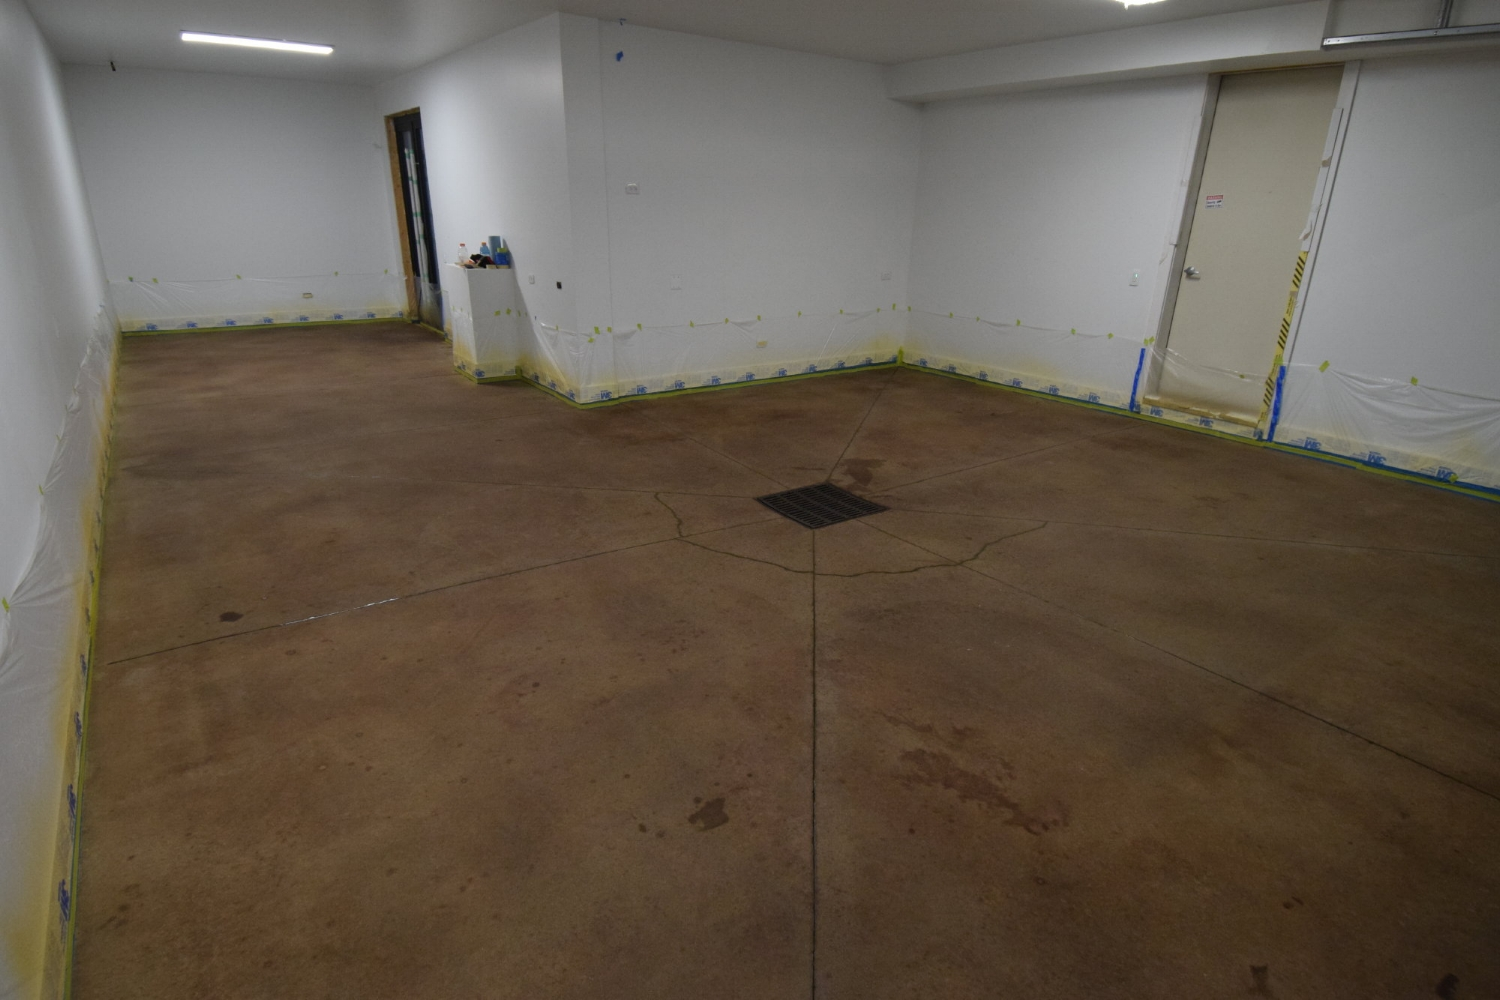 Garage Concrete Floor Just After Applying Dark Brown/Black Acid Stain